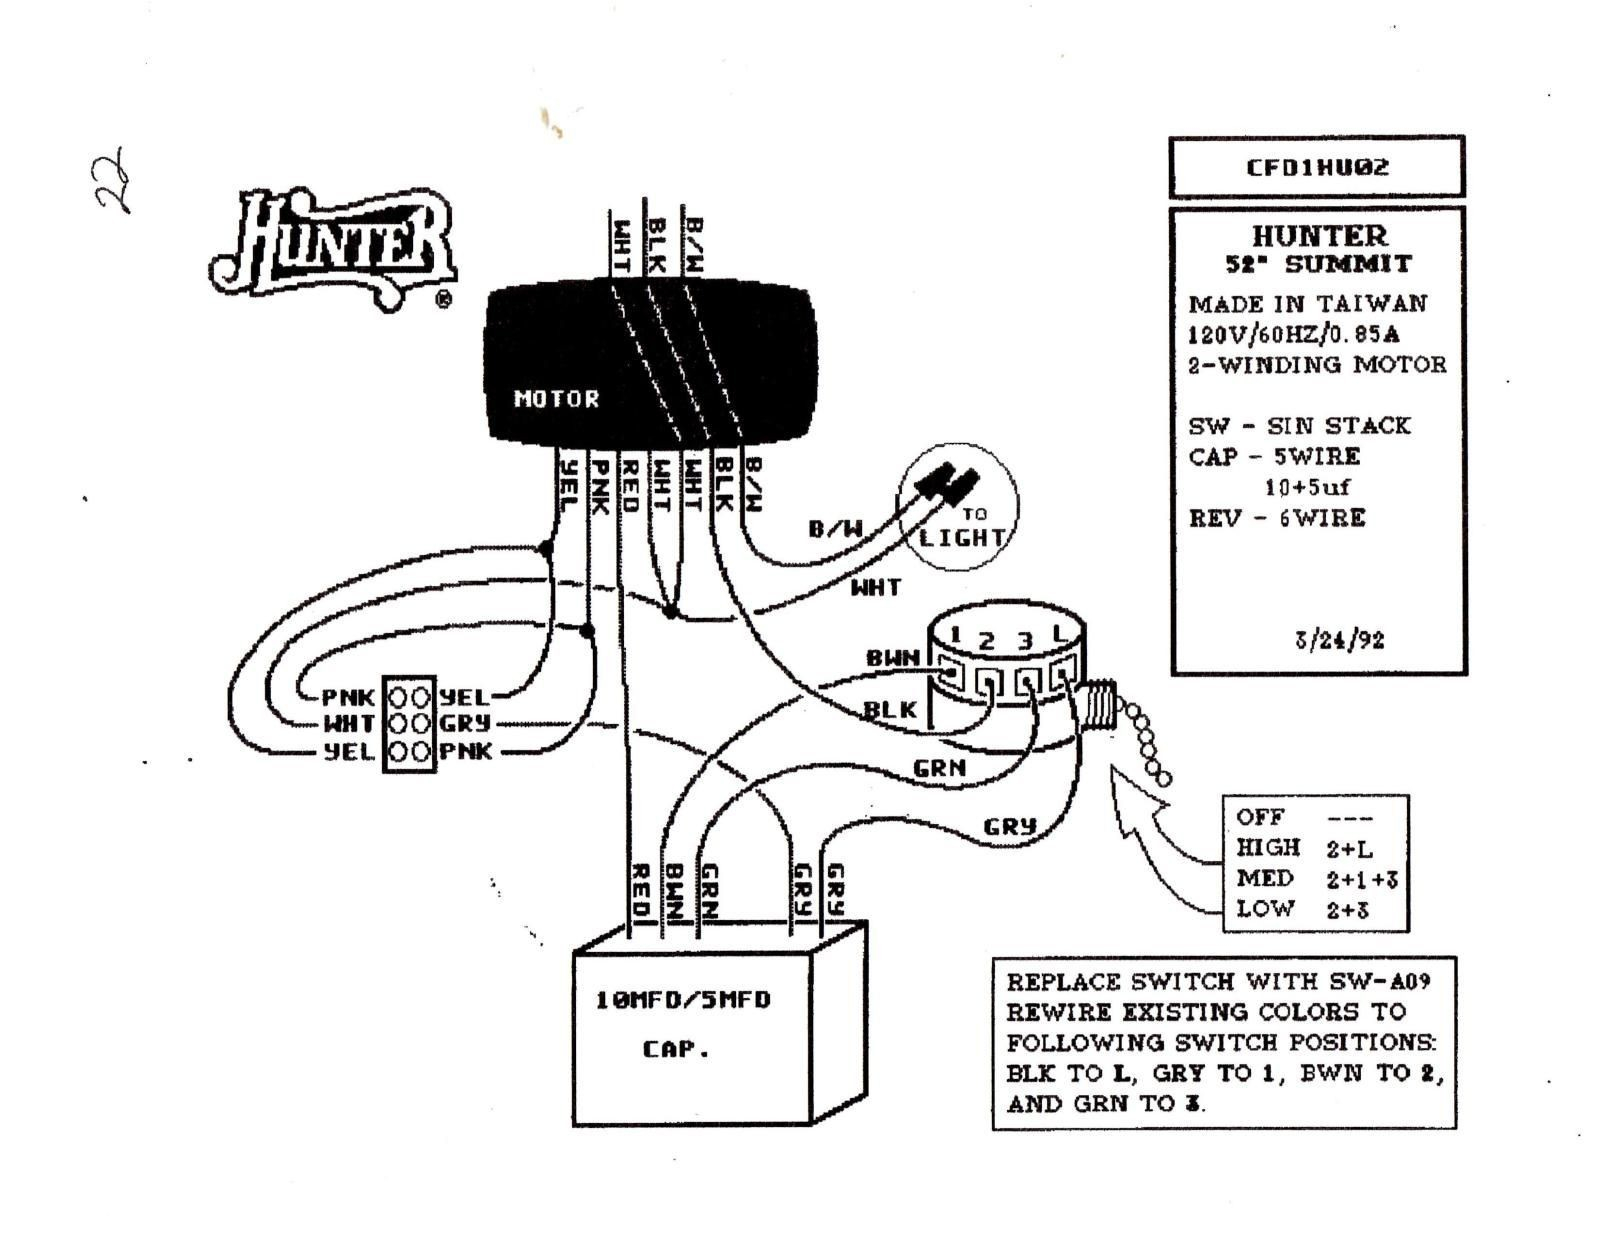 hunter 3 speed fan switch wiring diagram Collection-Wiring Diagram for Ceiling Fan Speed Switch New Wiring Diagram for Ceiling Fan Switch New Hunter 1-t